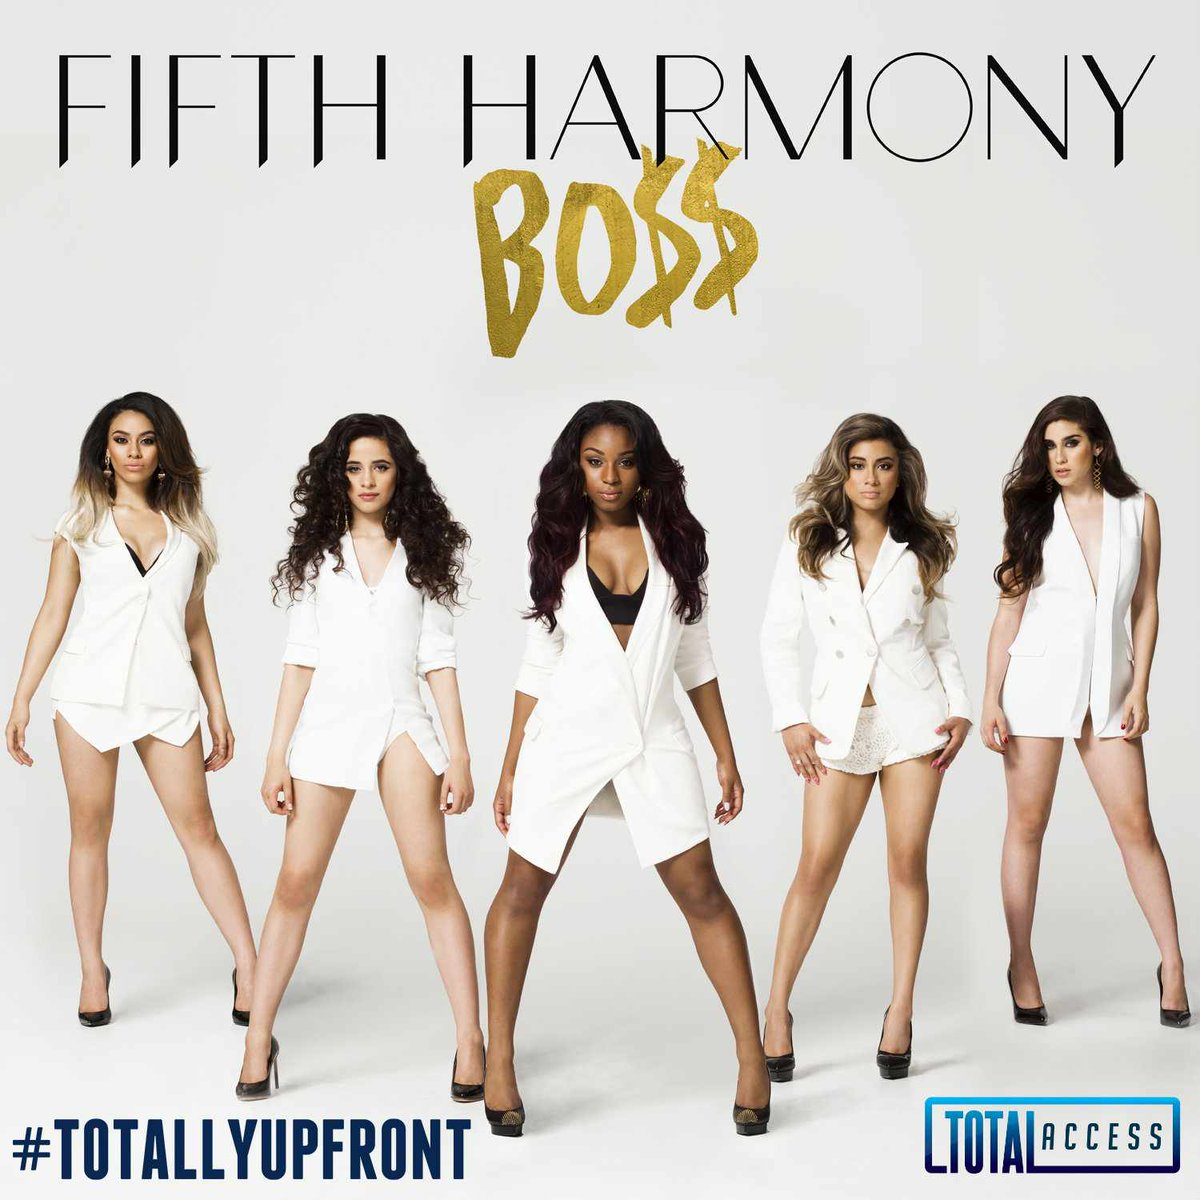 Tonight's #TotallyUpfront tune plays NEXT! It's brand new @FifthHarmony - 'Bo$$'. Tell us what you think! http://t.co/4a5CPxLqEQ